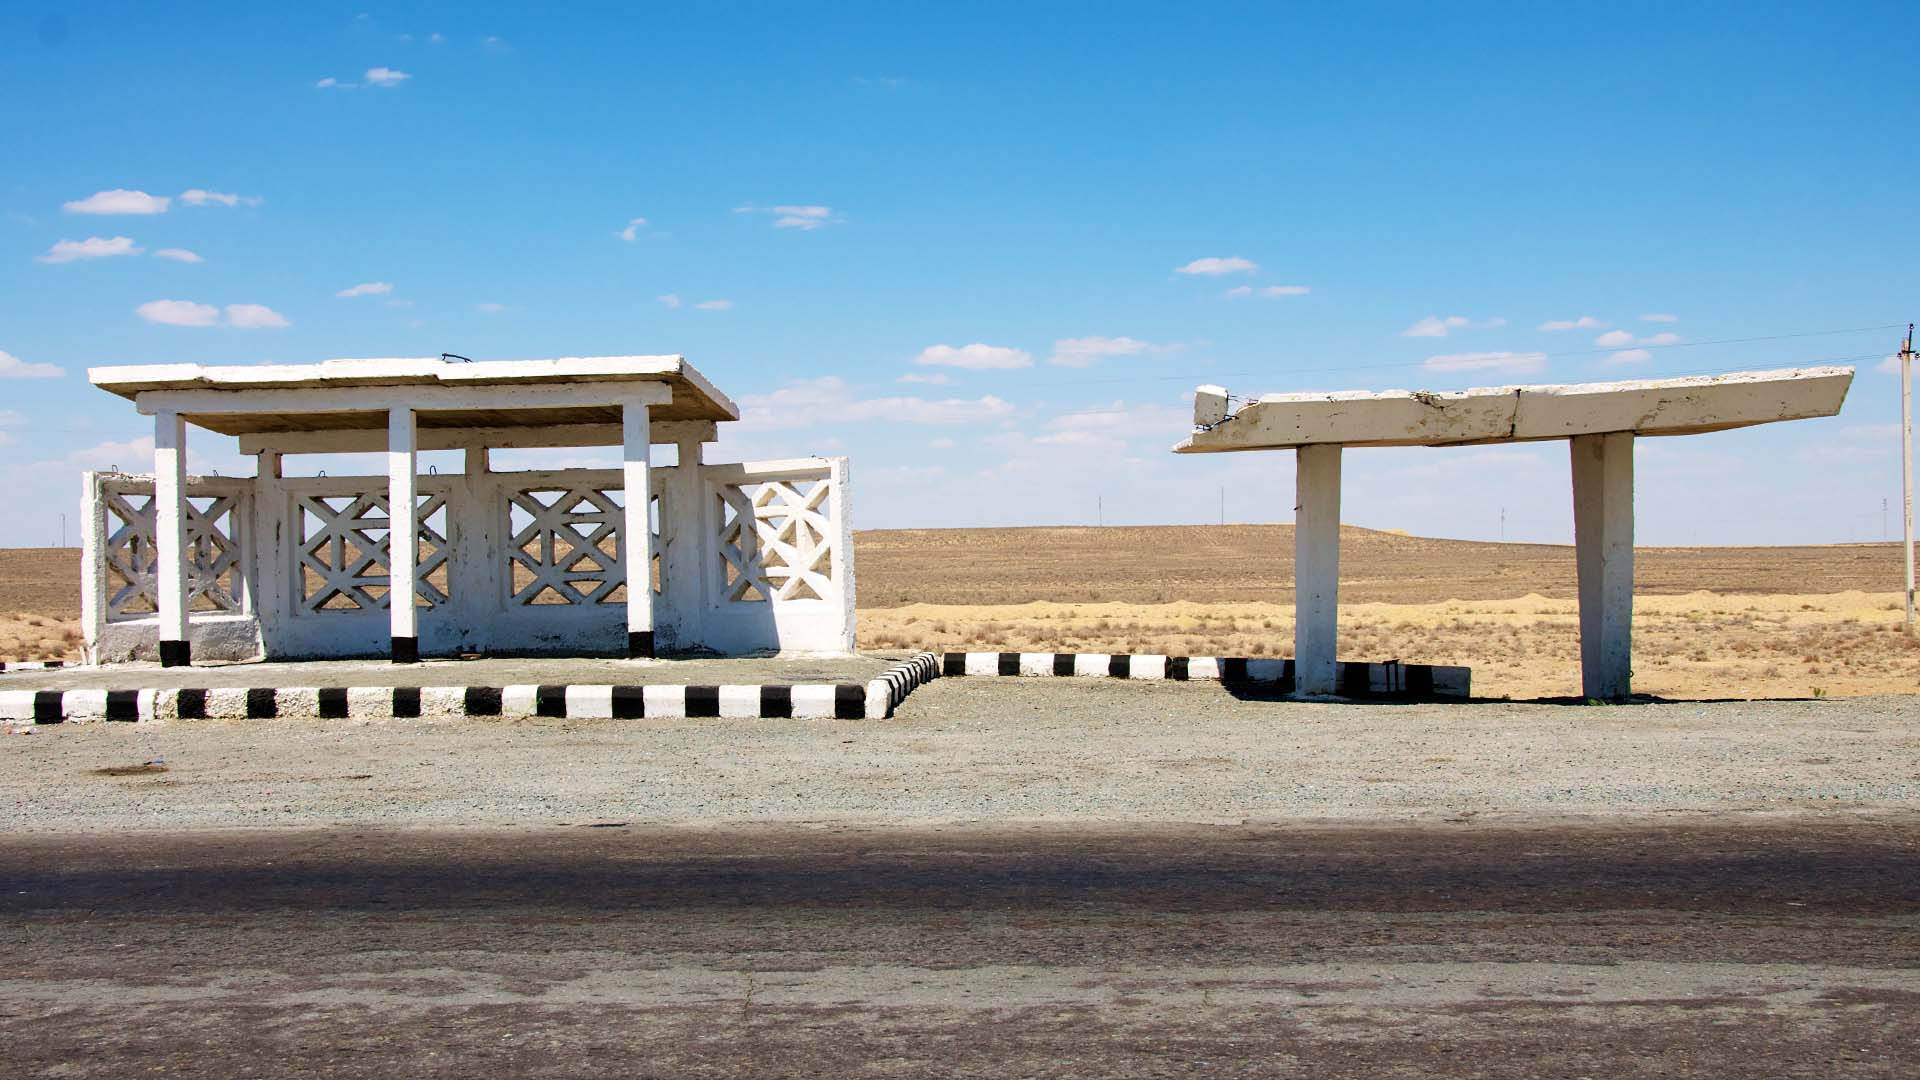 Uzbek Silk Road bus shelter